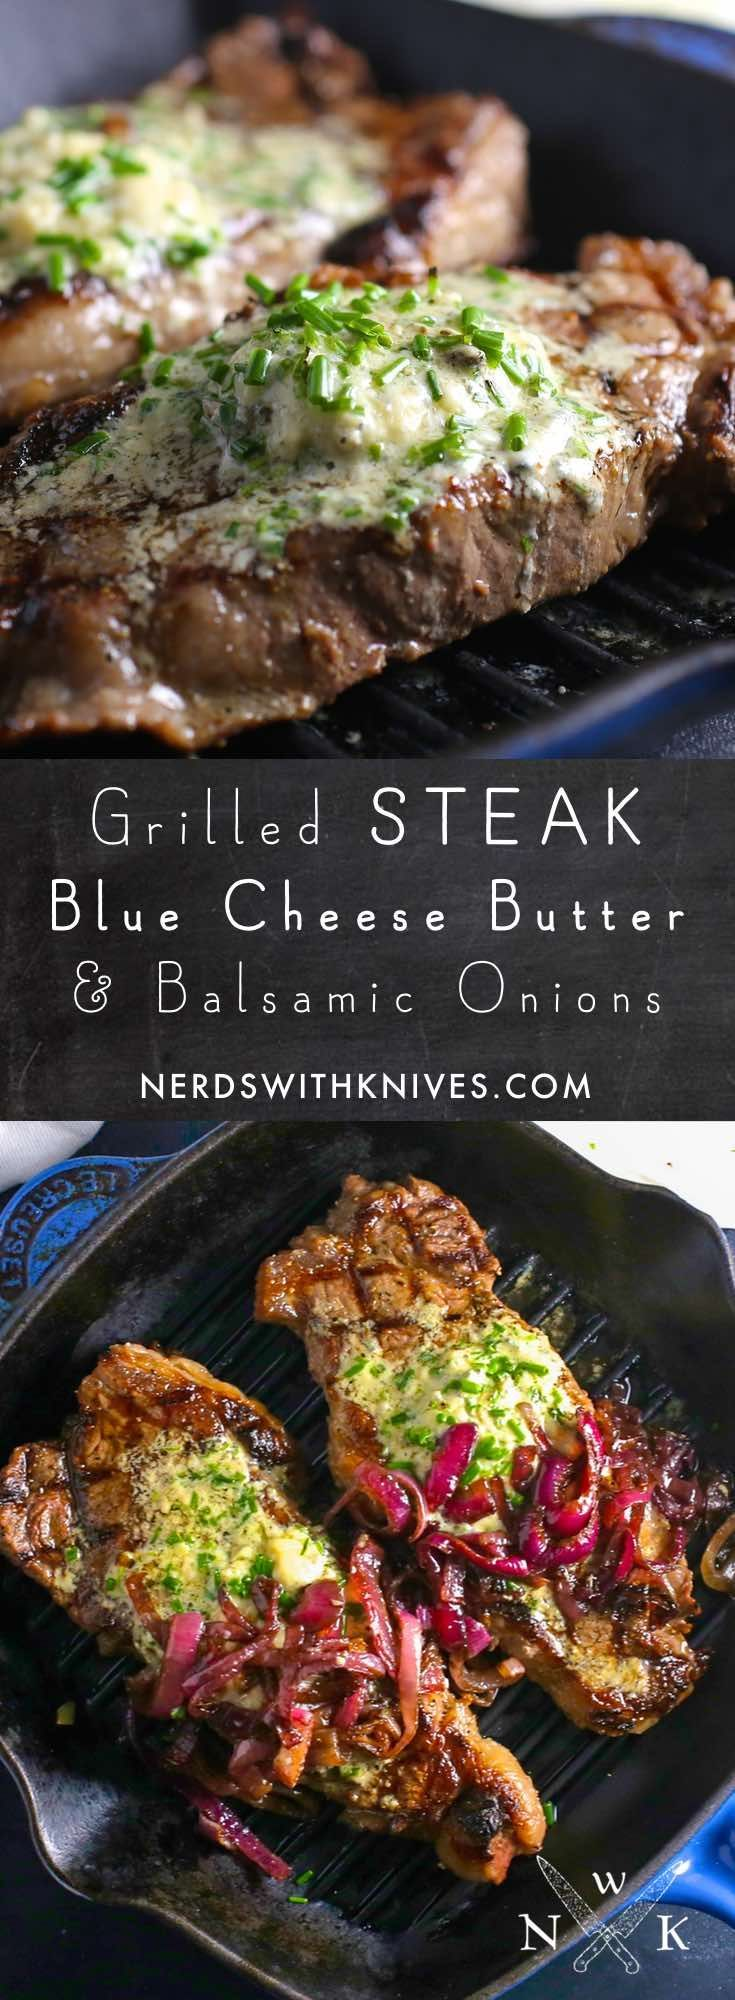 Steak with Blue Cheese and Chive Compound Butter #grillingrecipes